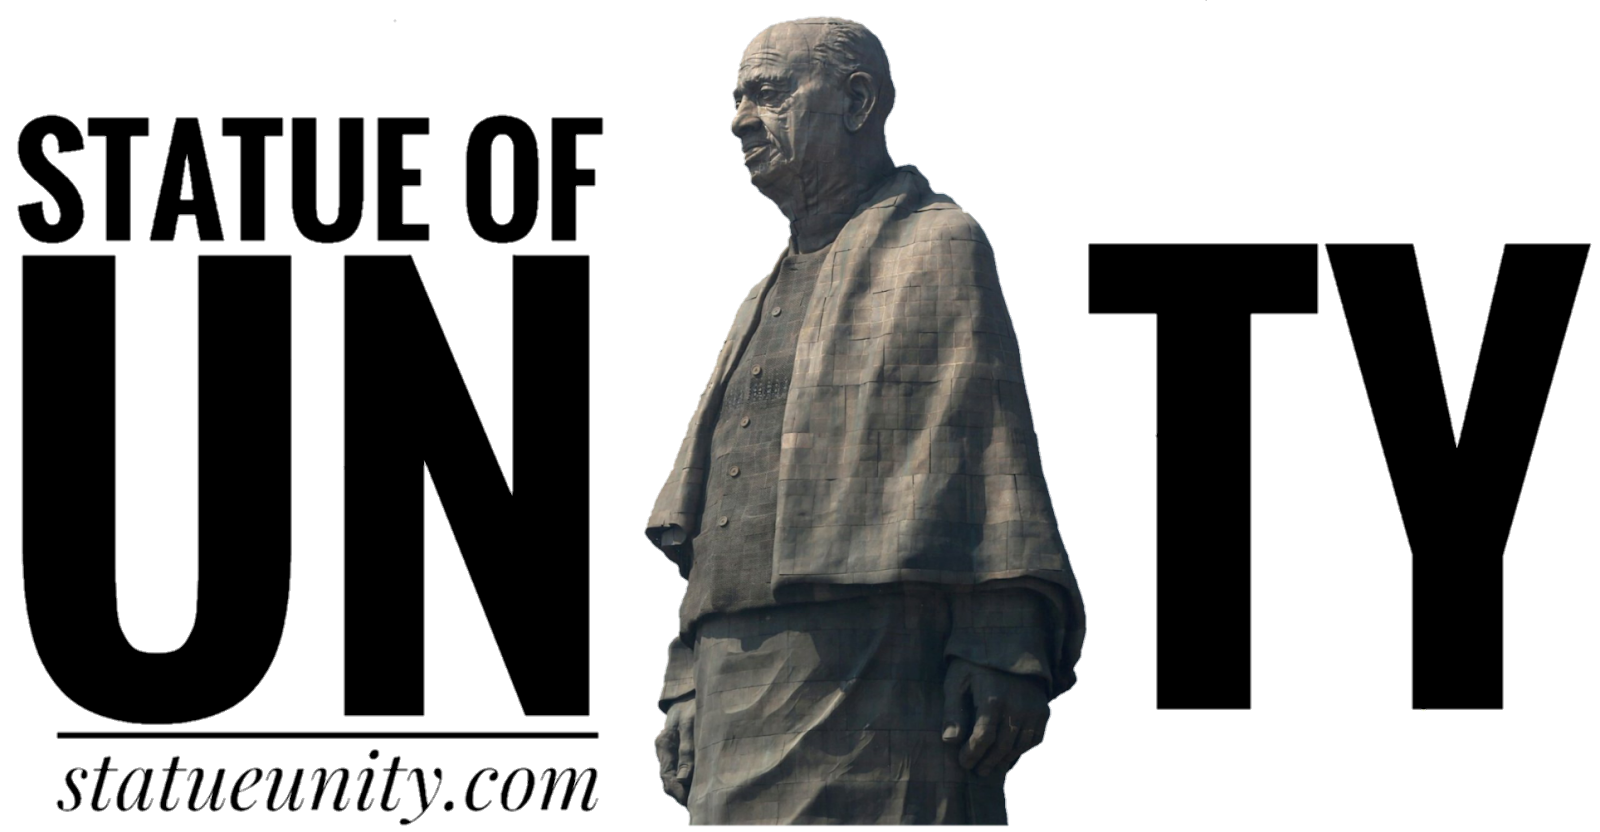 Statue of unity - Tallest Statue in the World, (India)